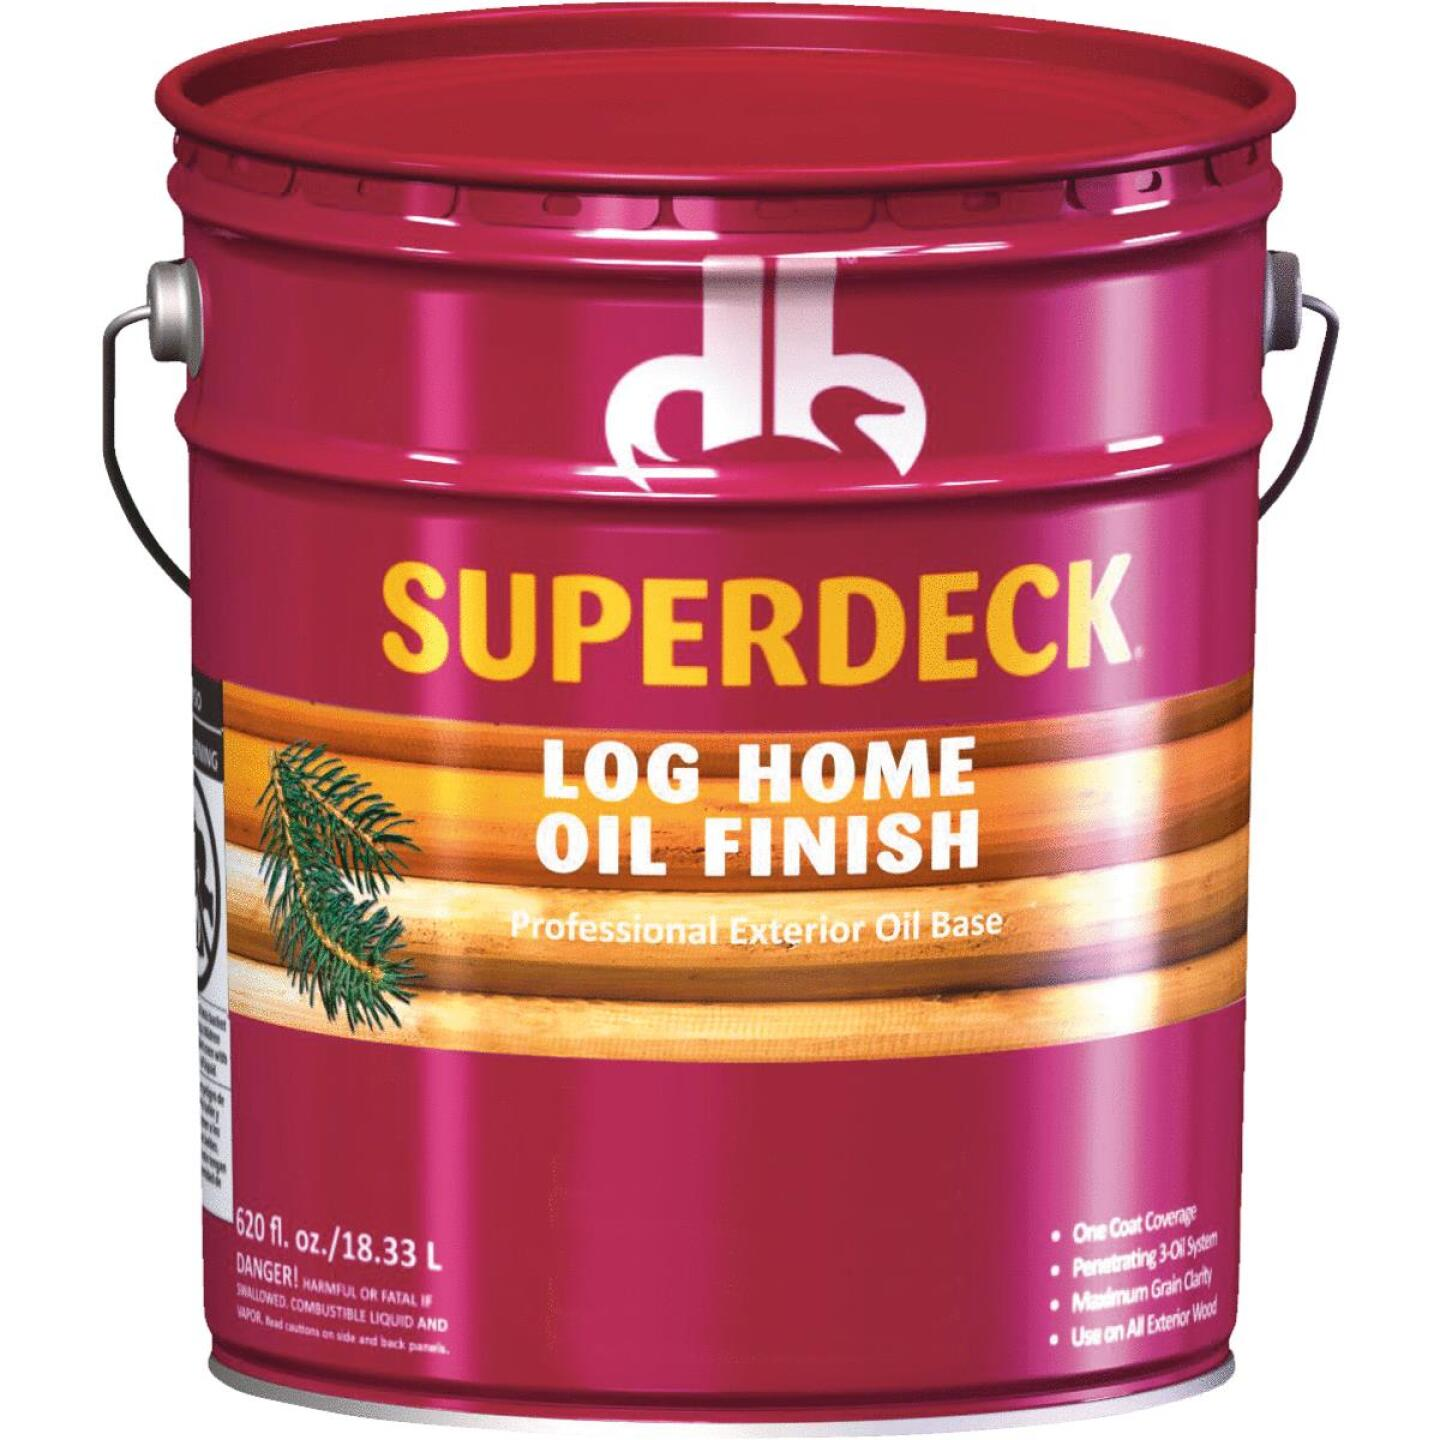 Duckback SUPERDECK Translucent Log Home Oil Finish, Golden Honey, 5 Gal. Image 1